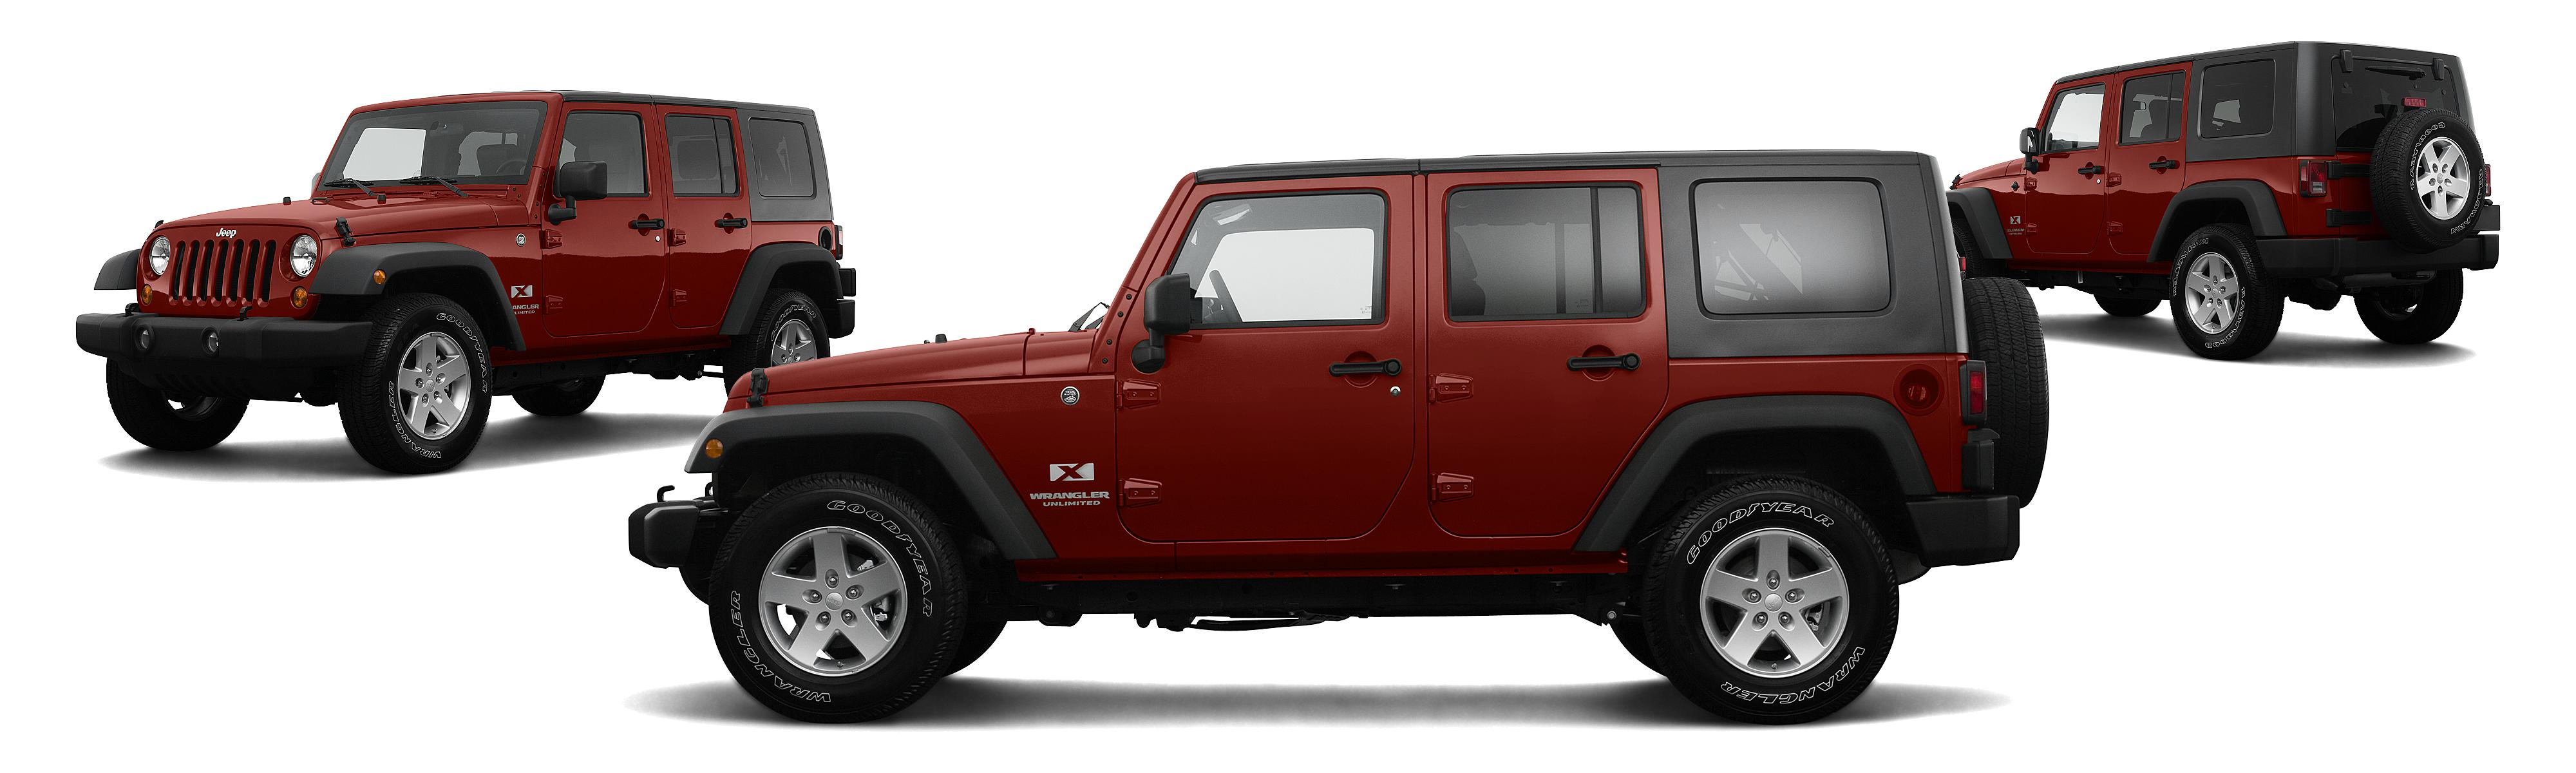 2008 Jeep Wrangler Unlimited 4x2 X 4dr SUV Research GrooveCar